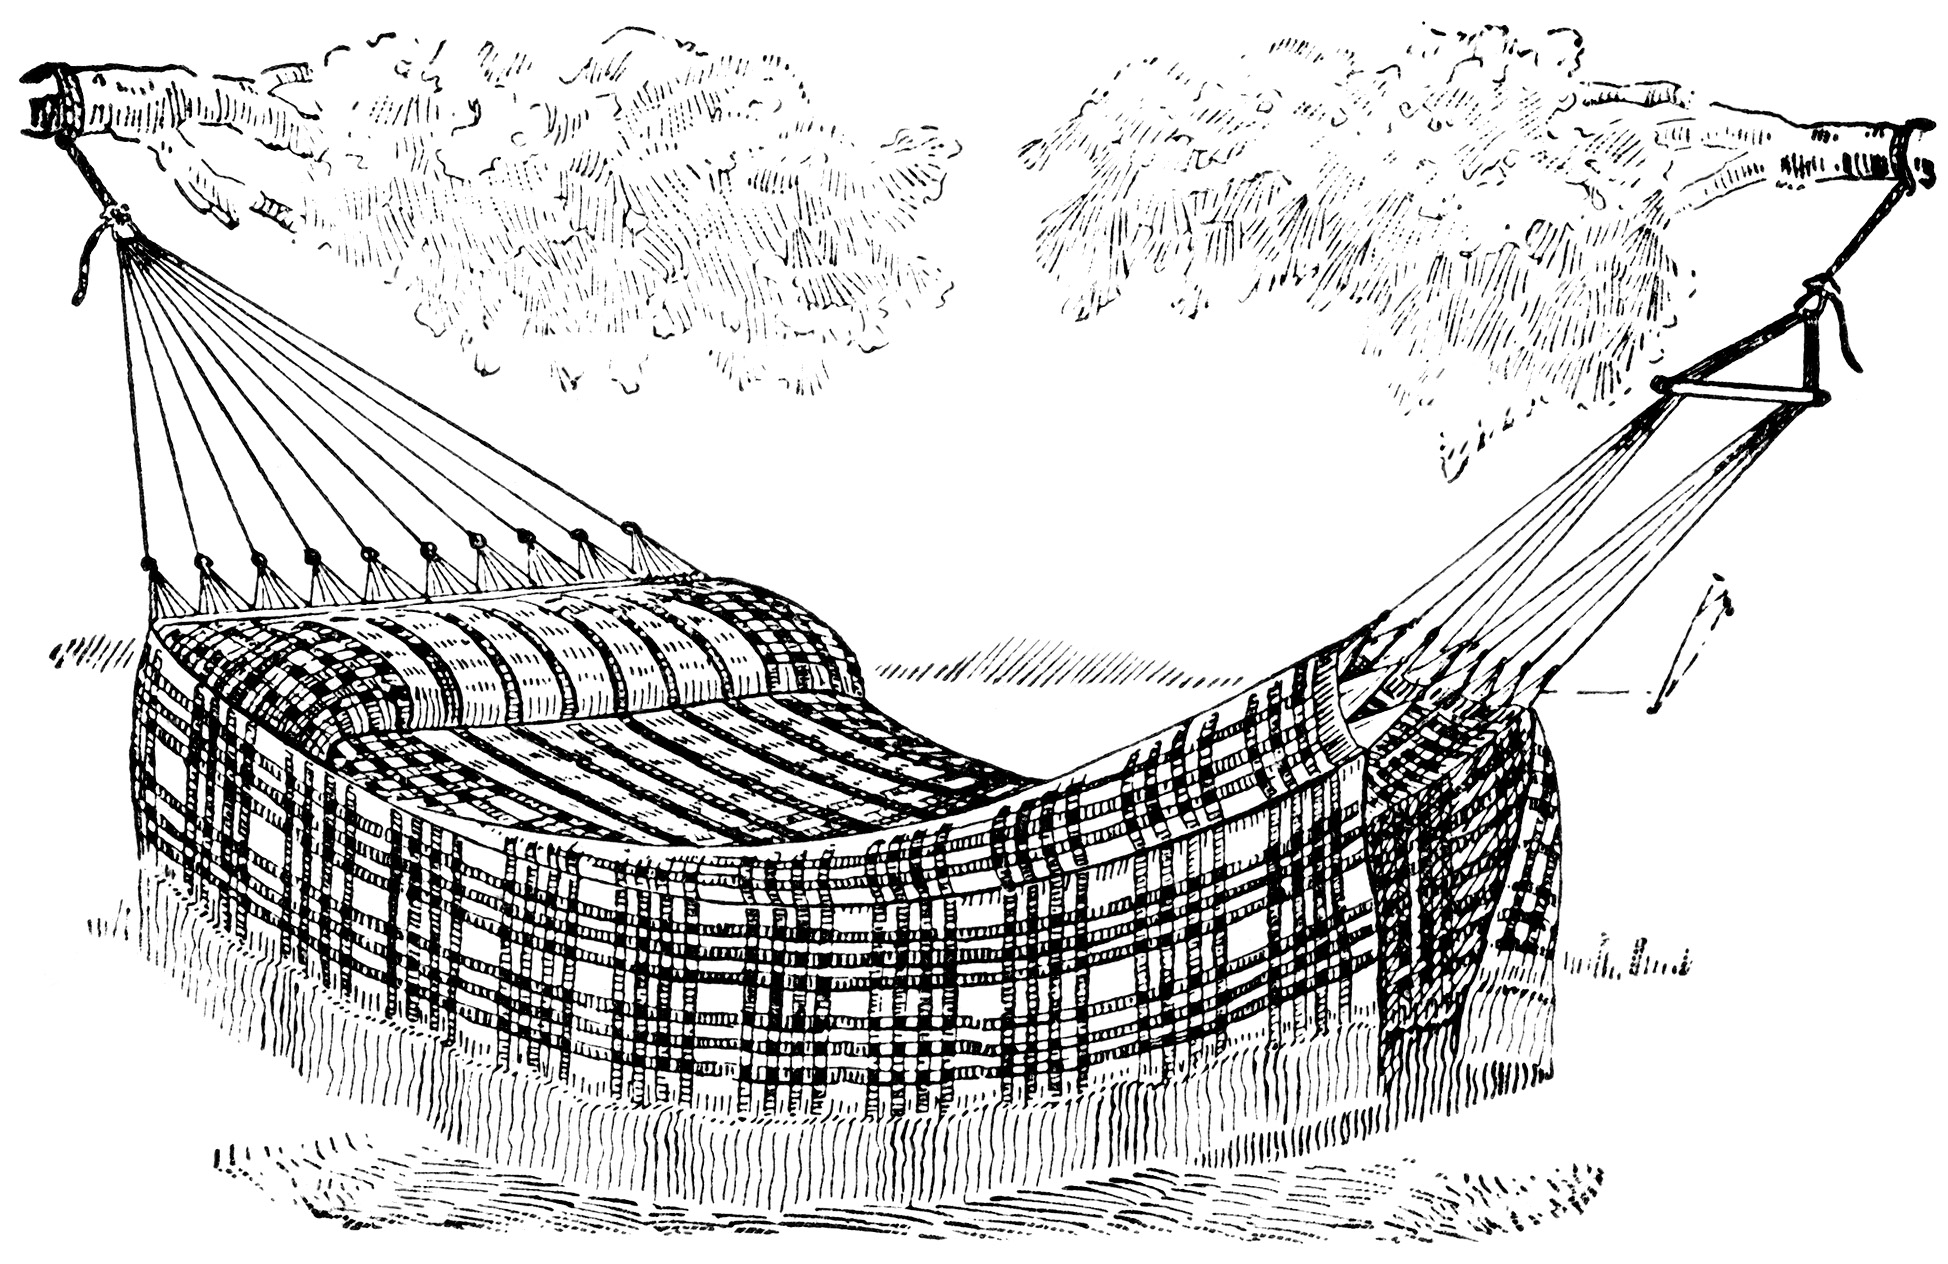 vintage hammock clip art, black and white clipart, vintage summer graphics, old fashioned plaid hammock, outdoor bed illustration